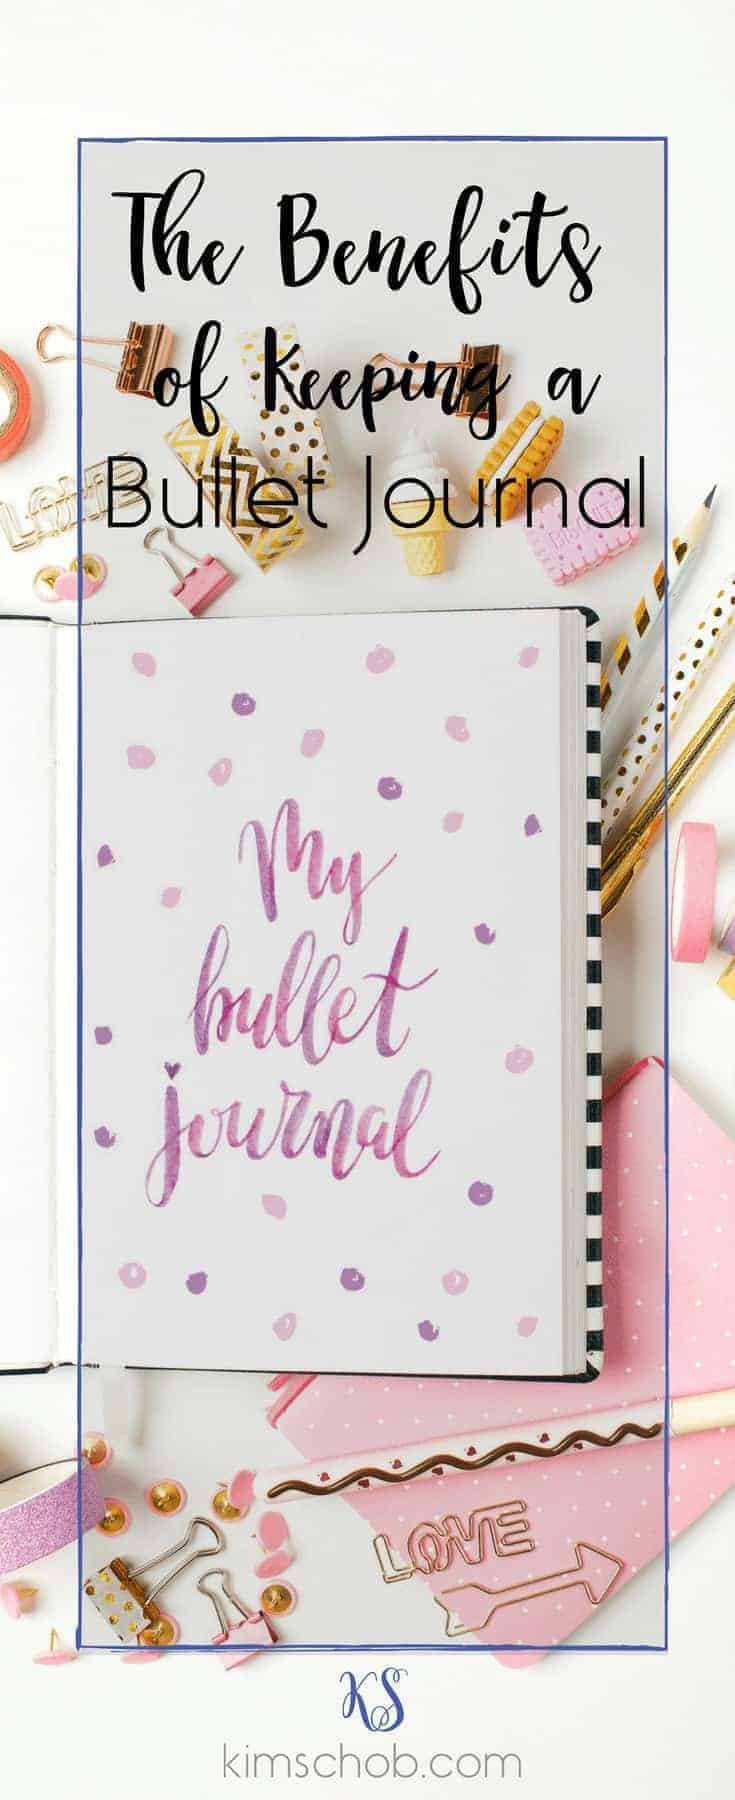 The Benefits of Keeping a Bullet Journal |bullet journal with clips, pens, and other accessories in a soft pink hue #bulletjournal #organization #lifestyle | kimschob.com